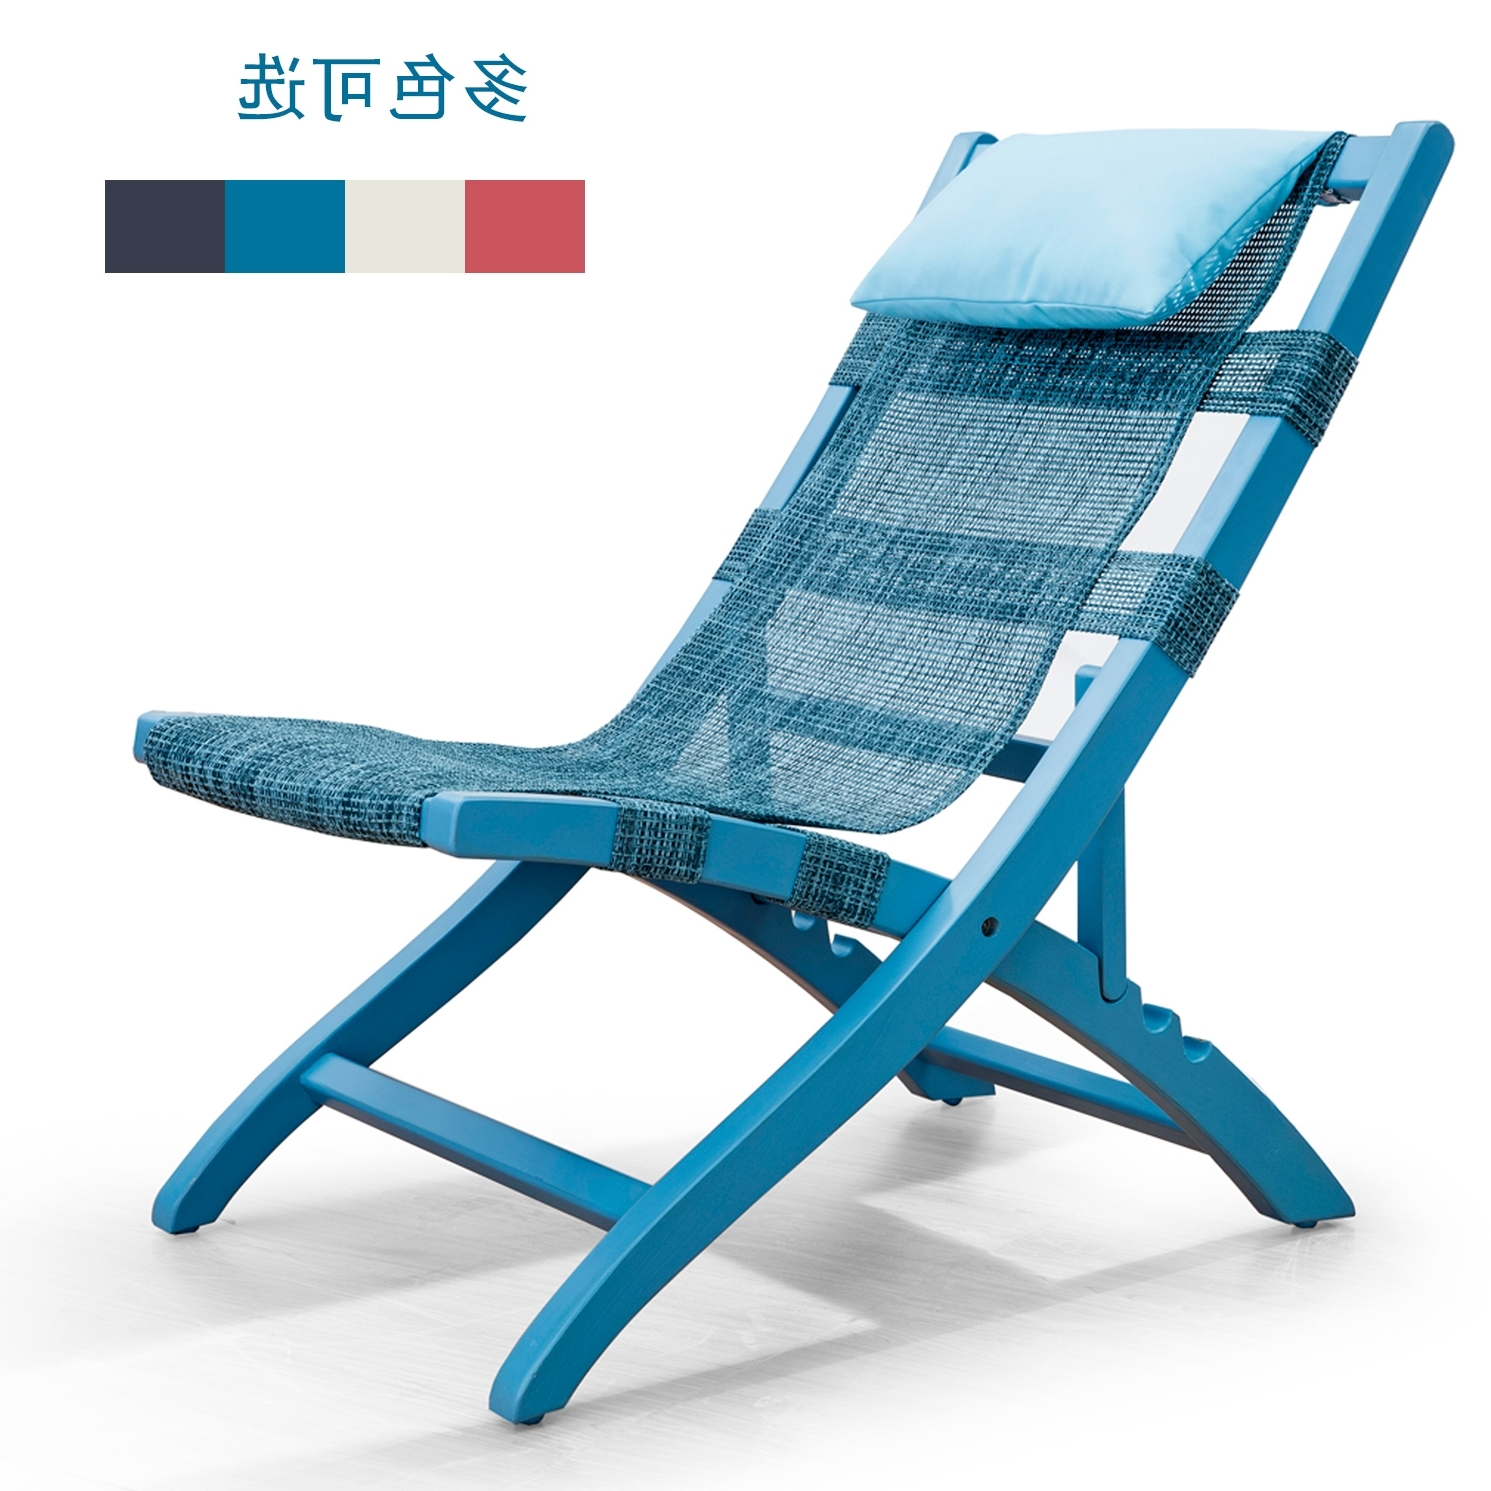 Well Known Uncategorized : Folding Chaise Lounge Chair With Trendy Chaise Pertaining To Maureen Outdoor Folding Chaise Lounge Chairs (View 15 of 15)